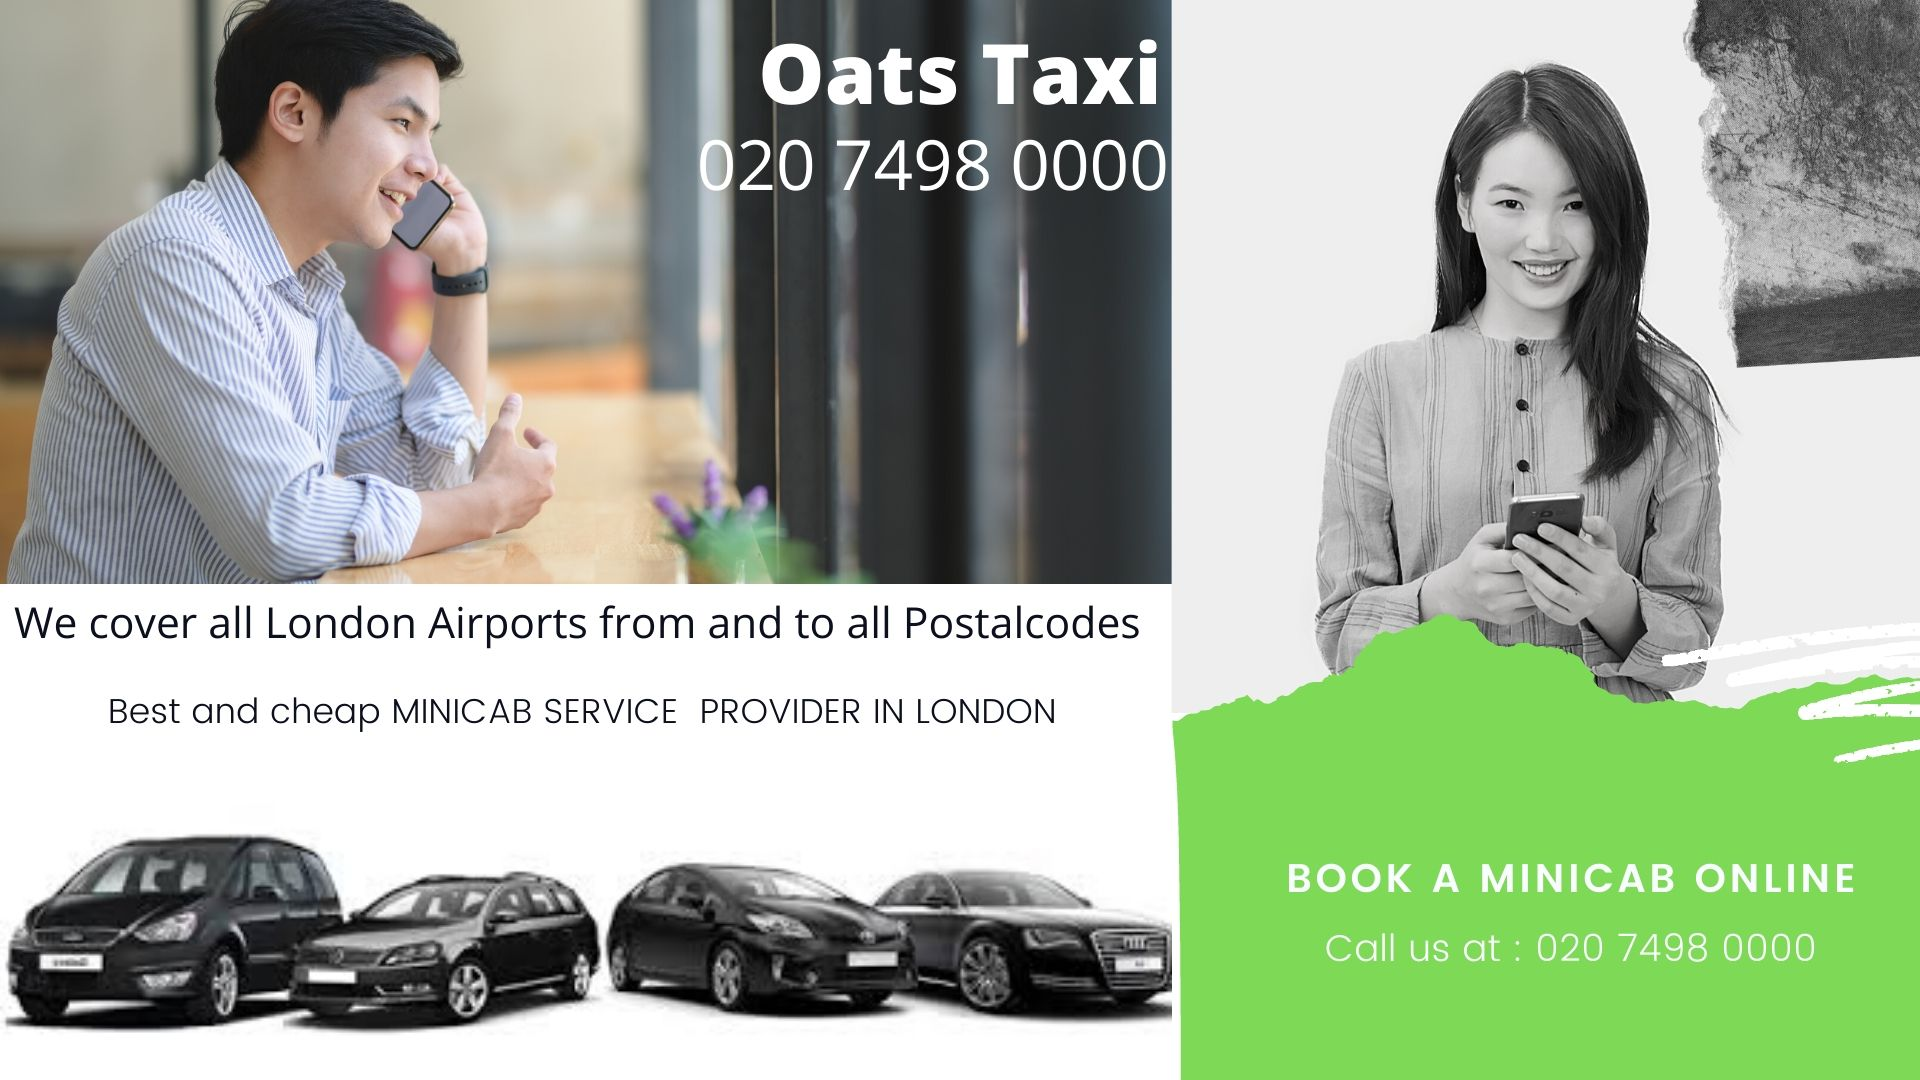 Minicab Office Near BATTERSEA HIGH STREET, Battersea SW11, Minicab From Battersea SW11 To Gatwick Airport